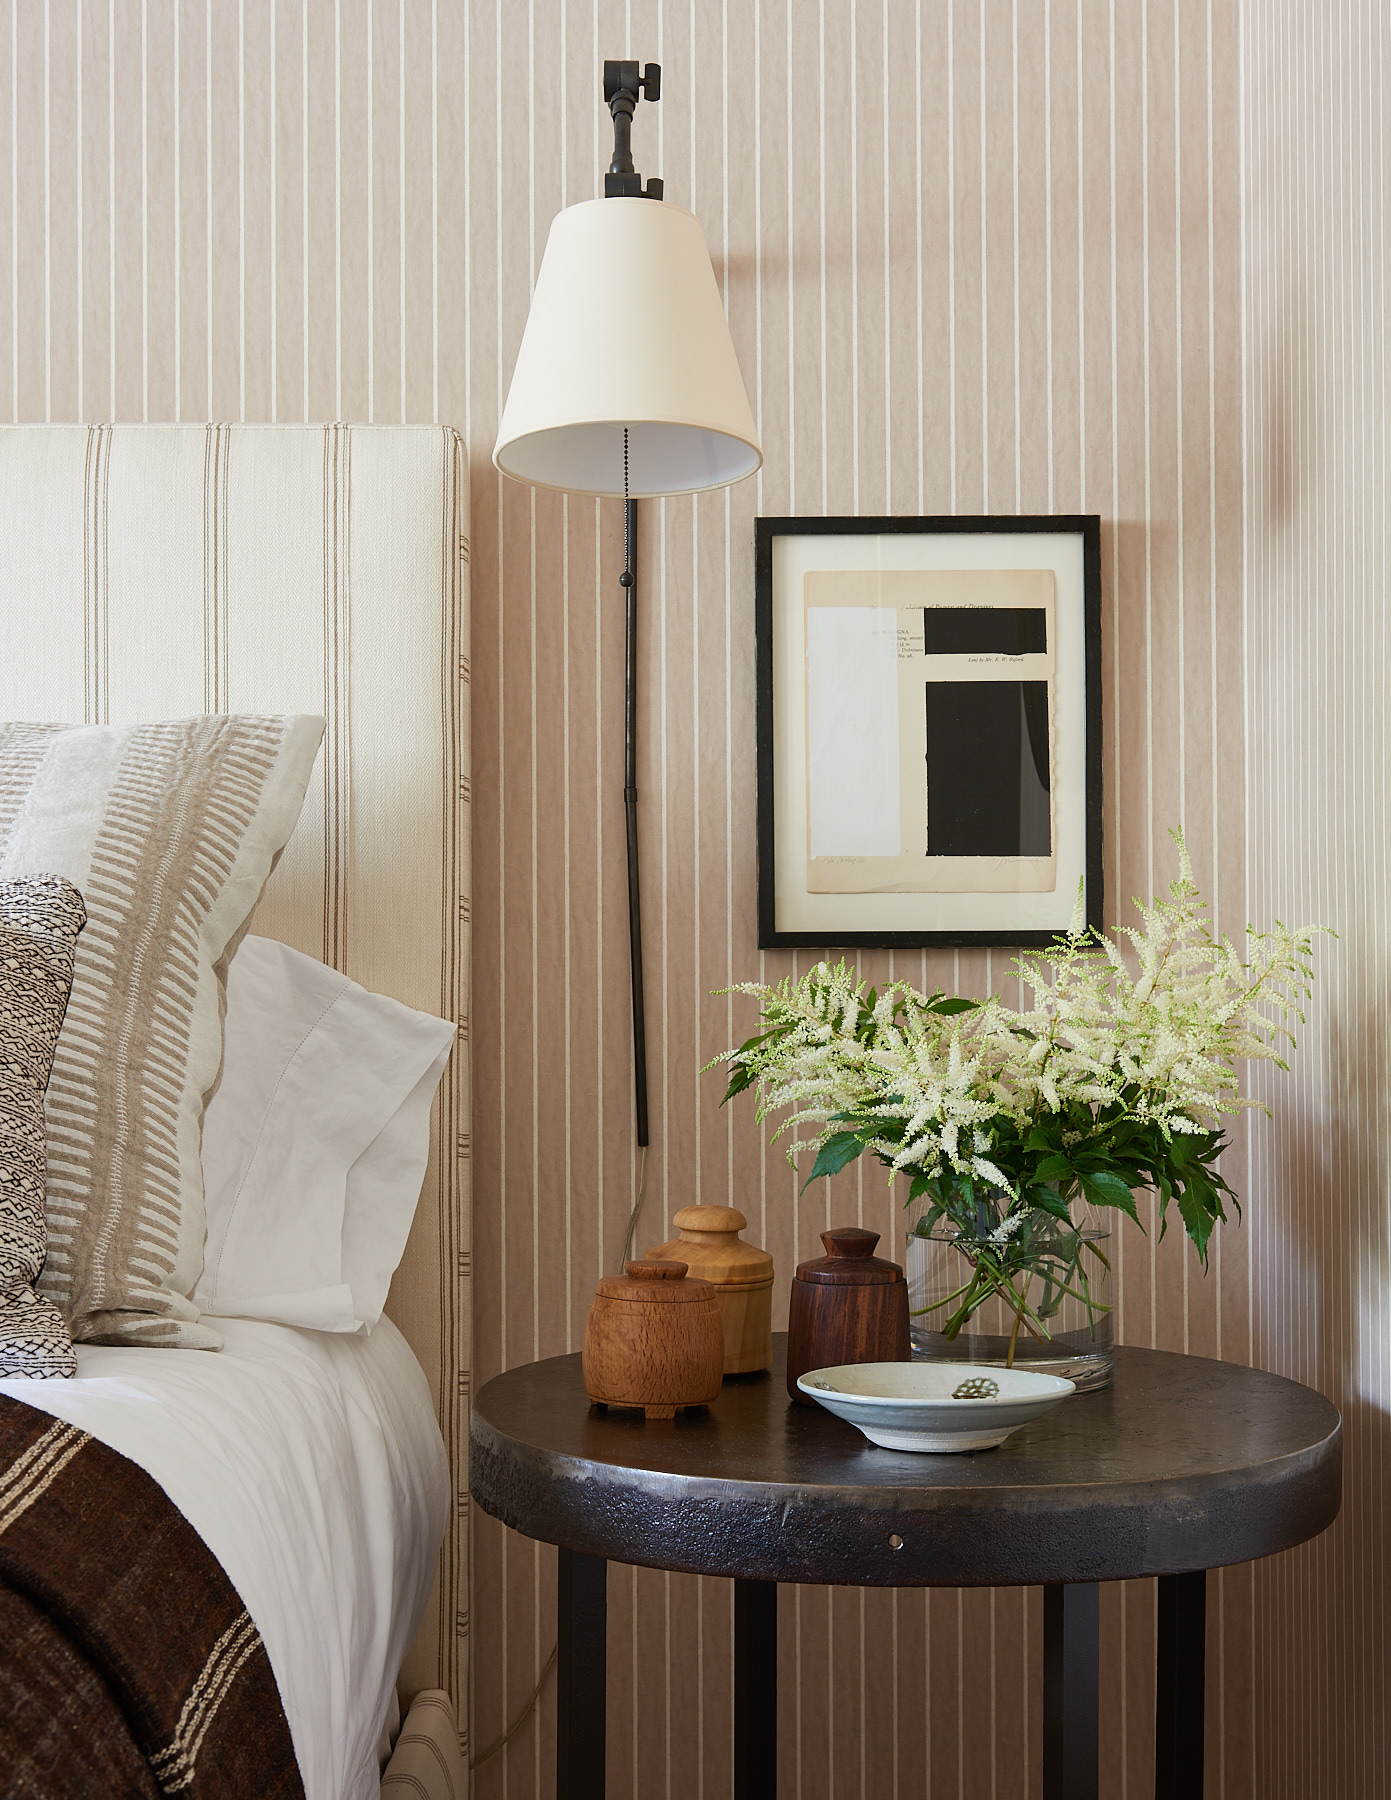 Striped headboard with various throw pillows